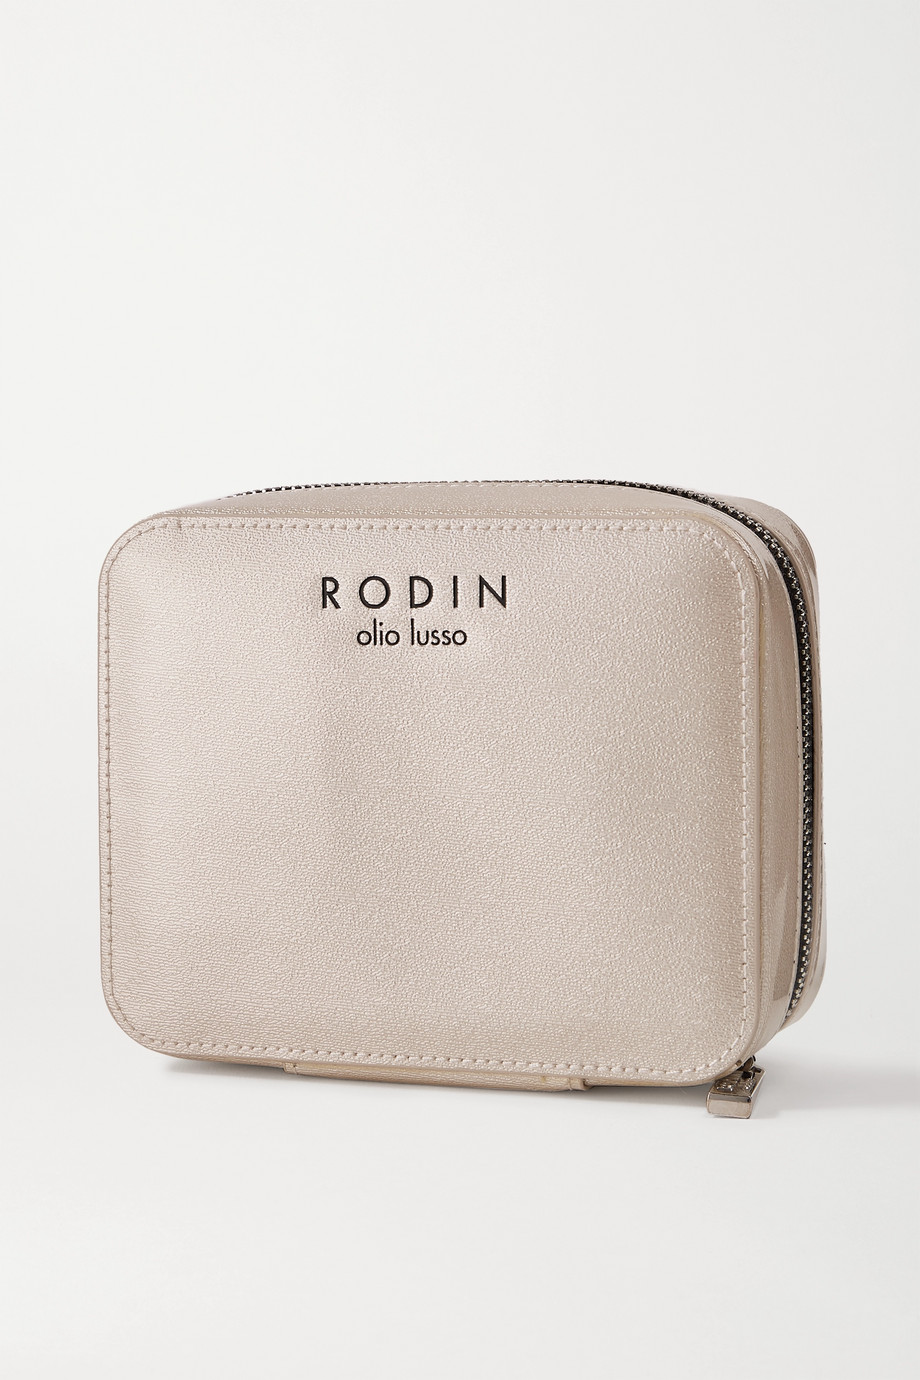 Rodin Luxury Signatures Kit